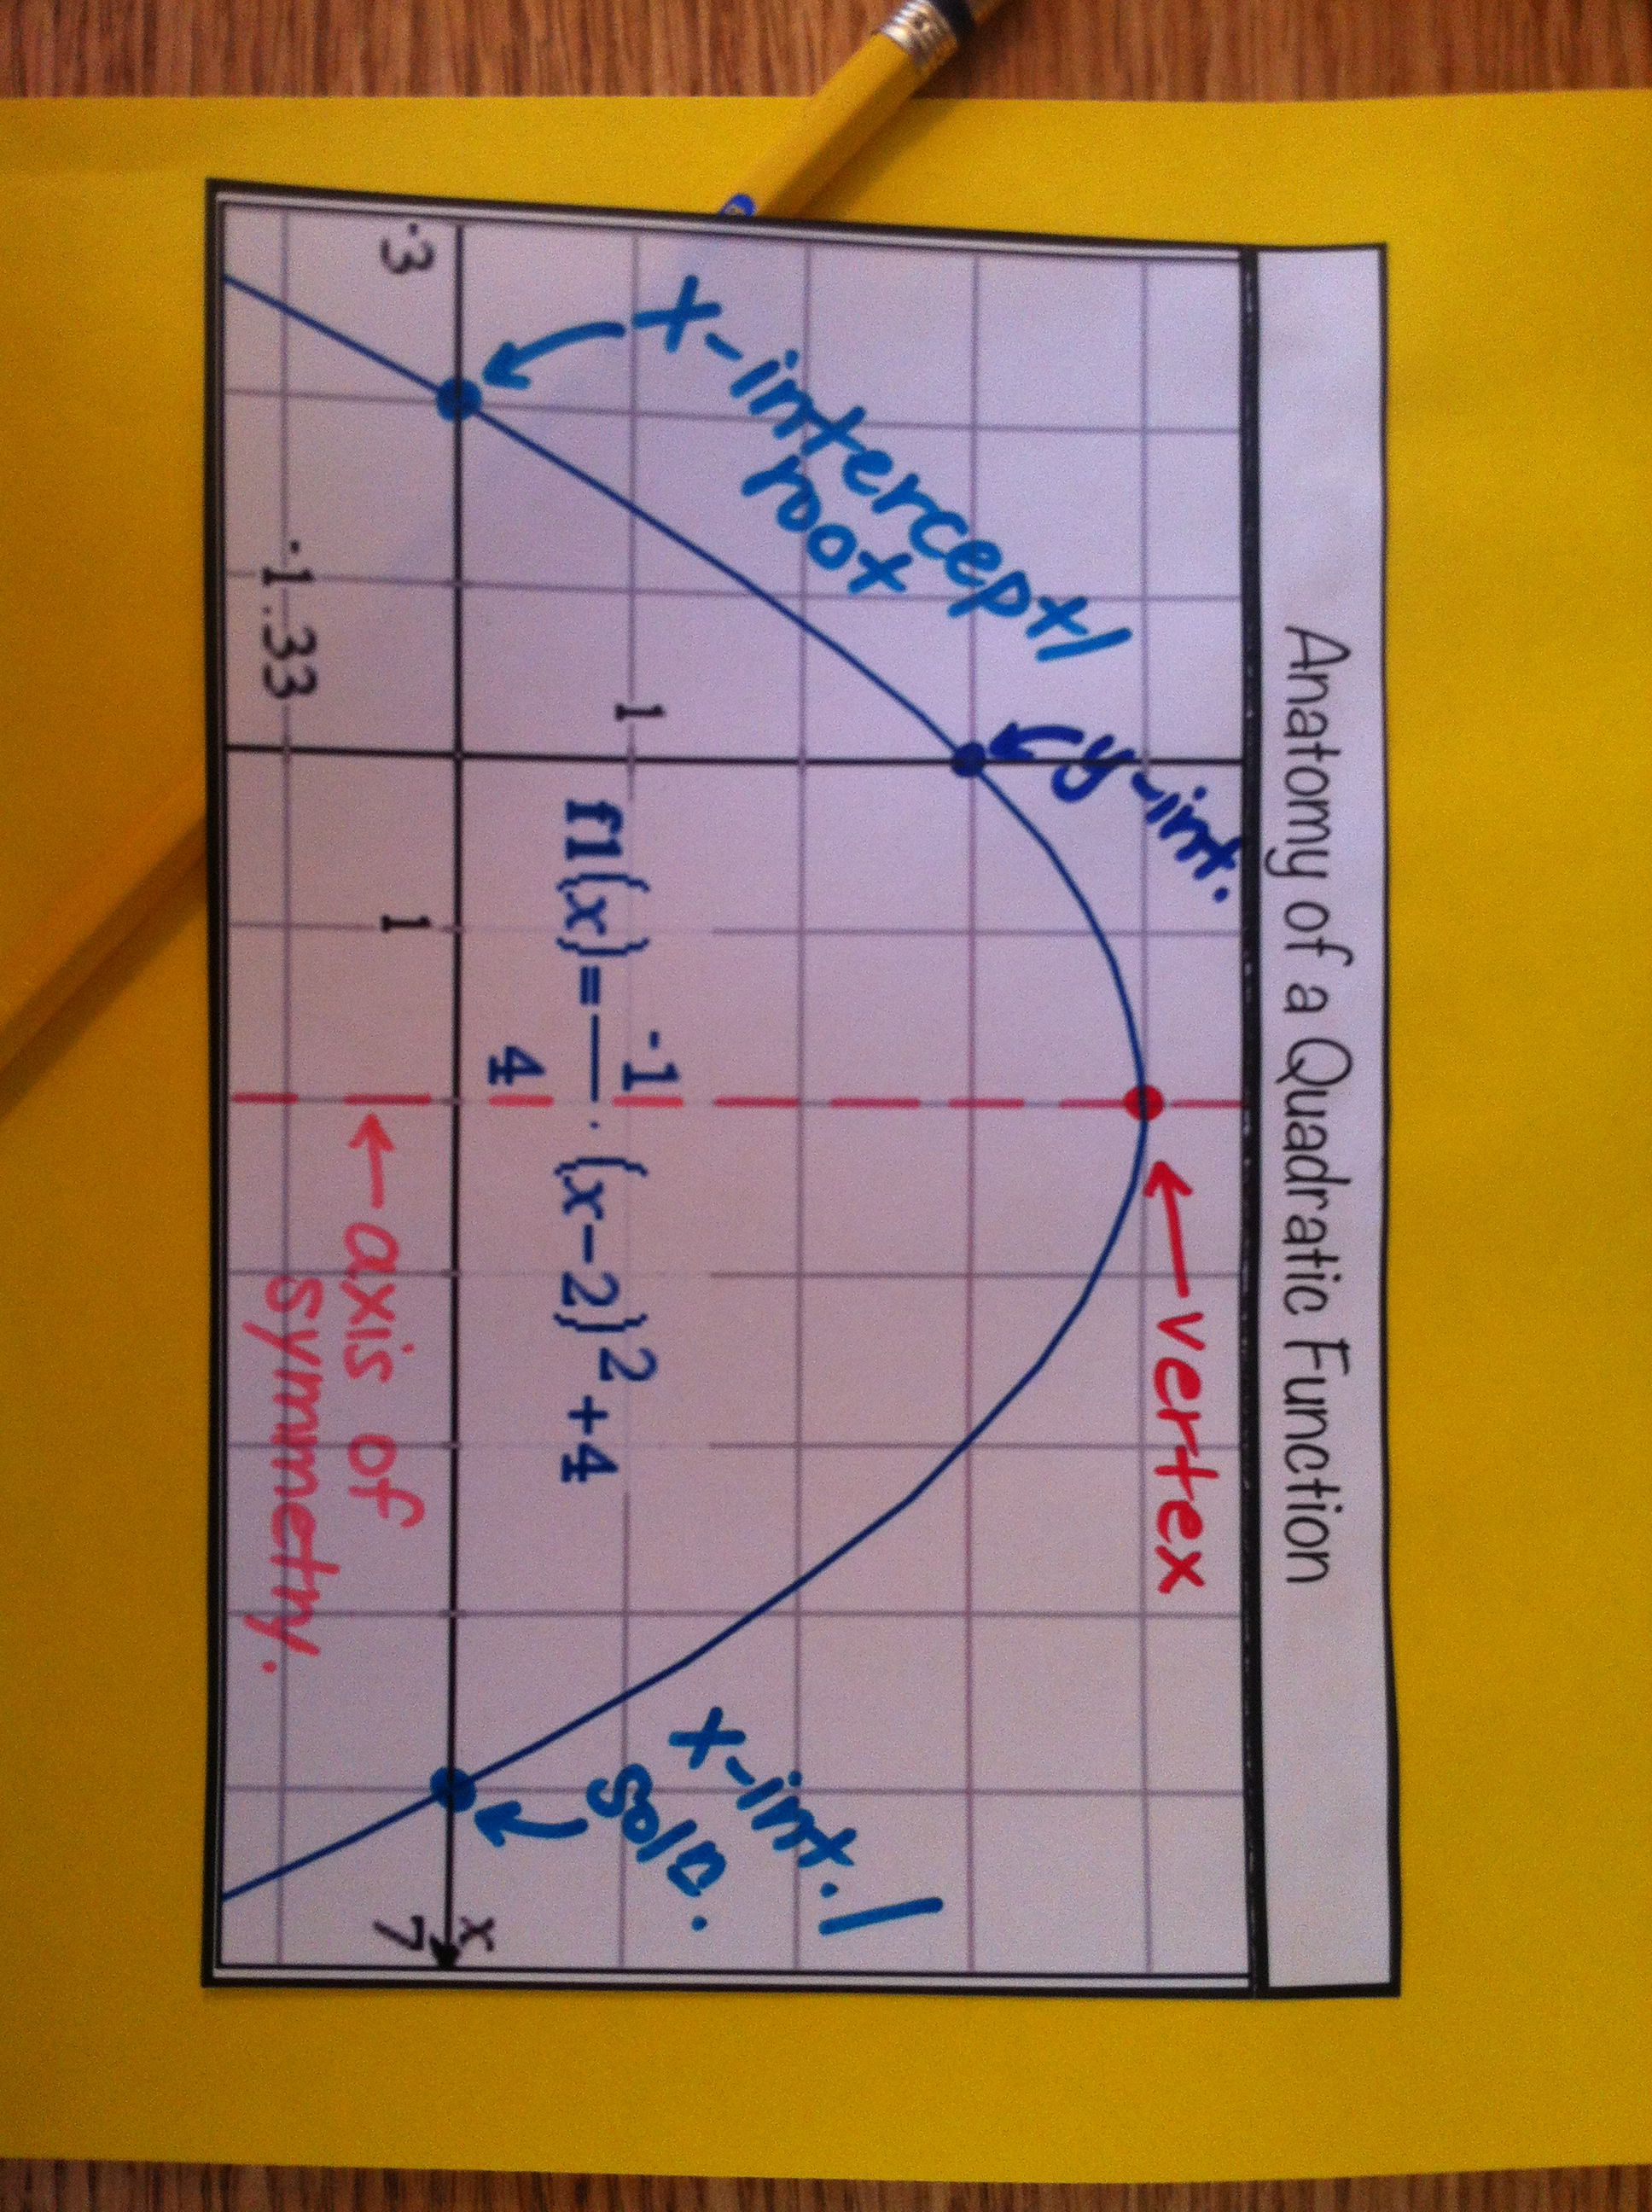 Anatomy Of A Quadratic Function 1 Tab Foldable With Room To Explain Ideas Underneath